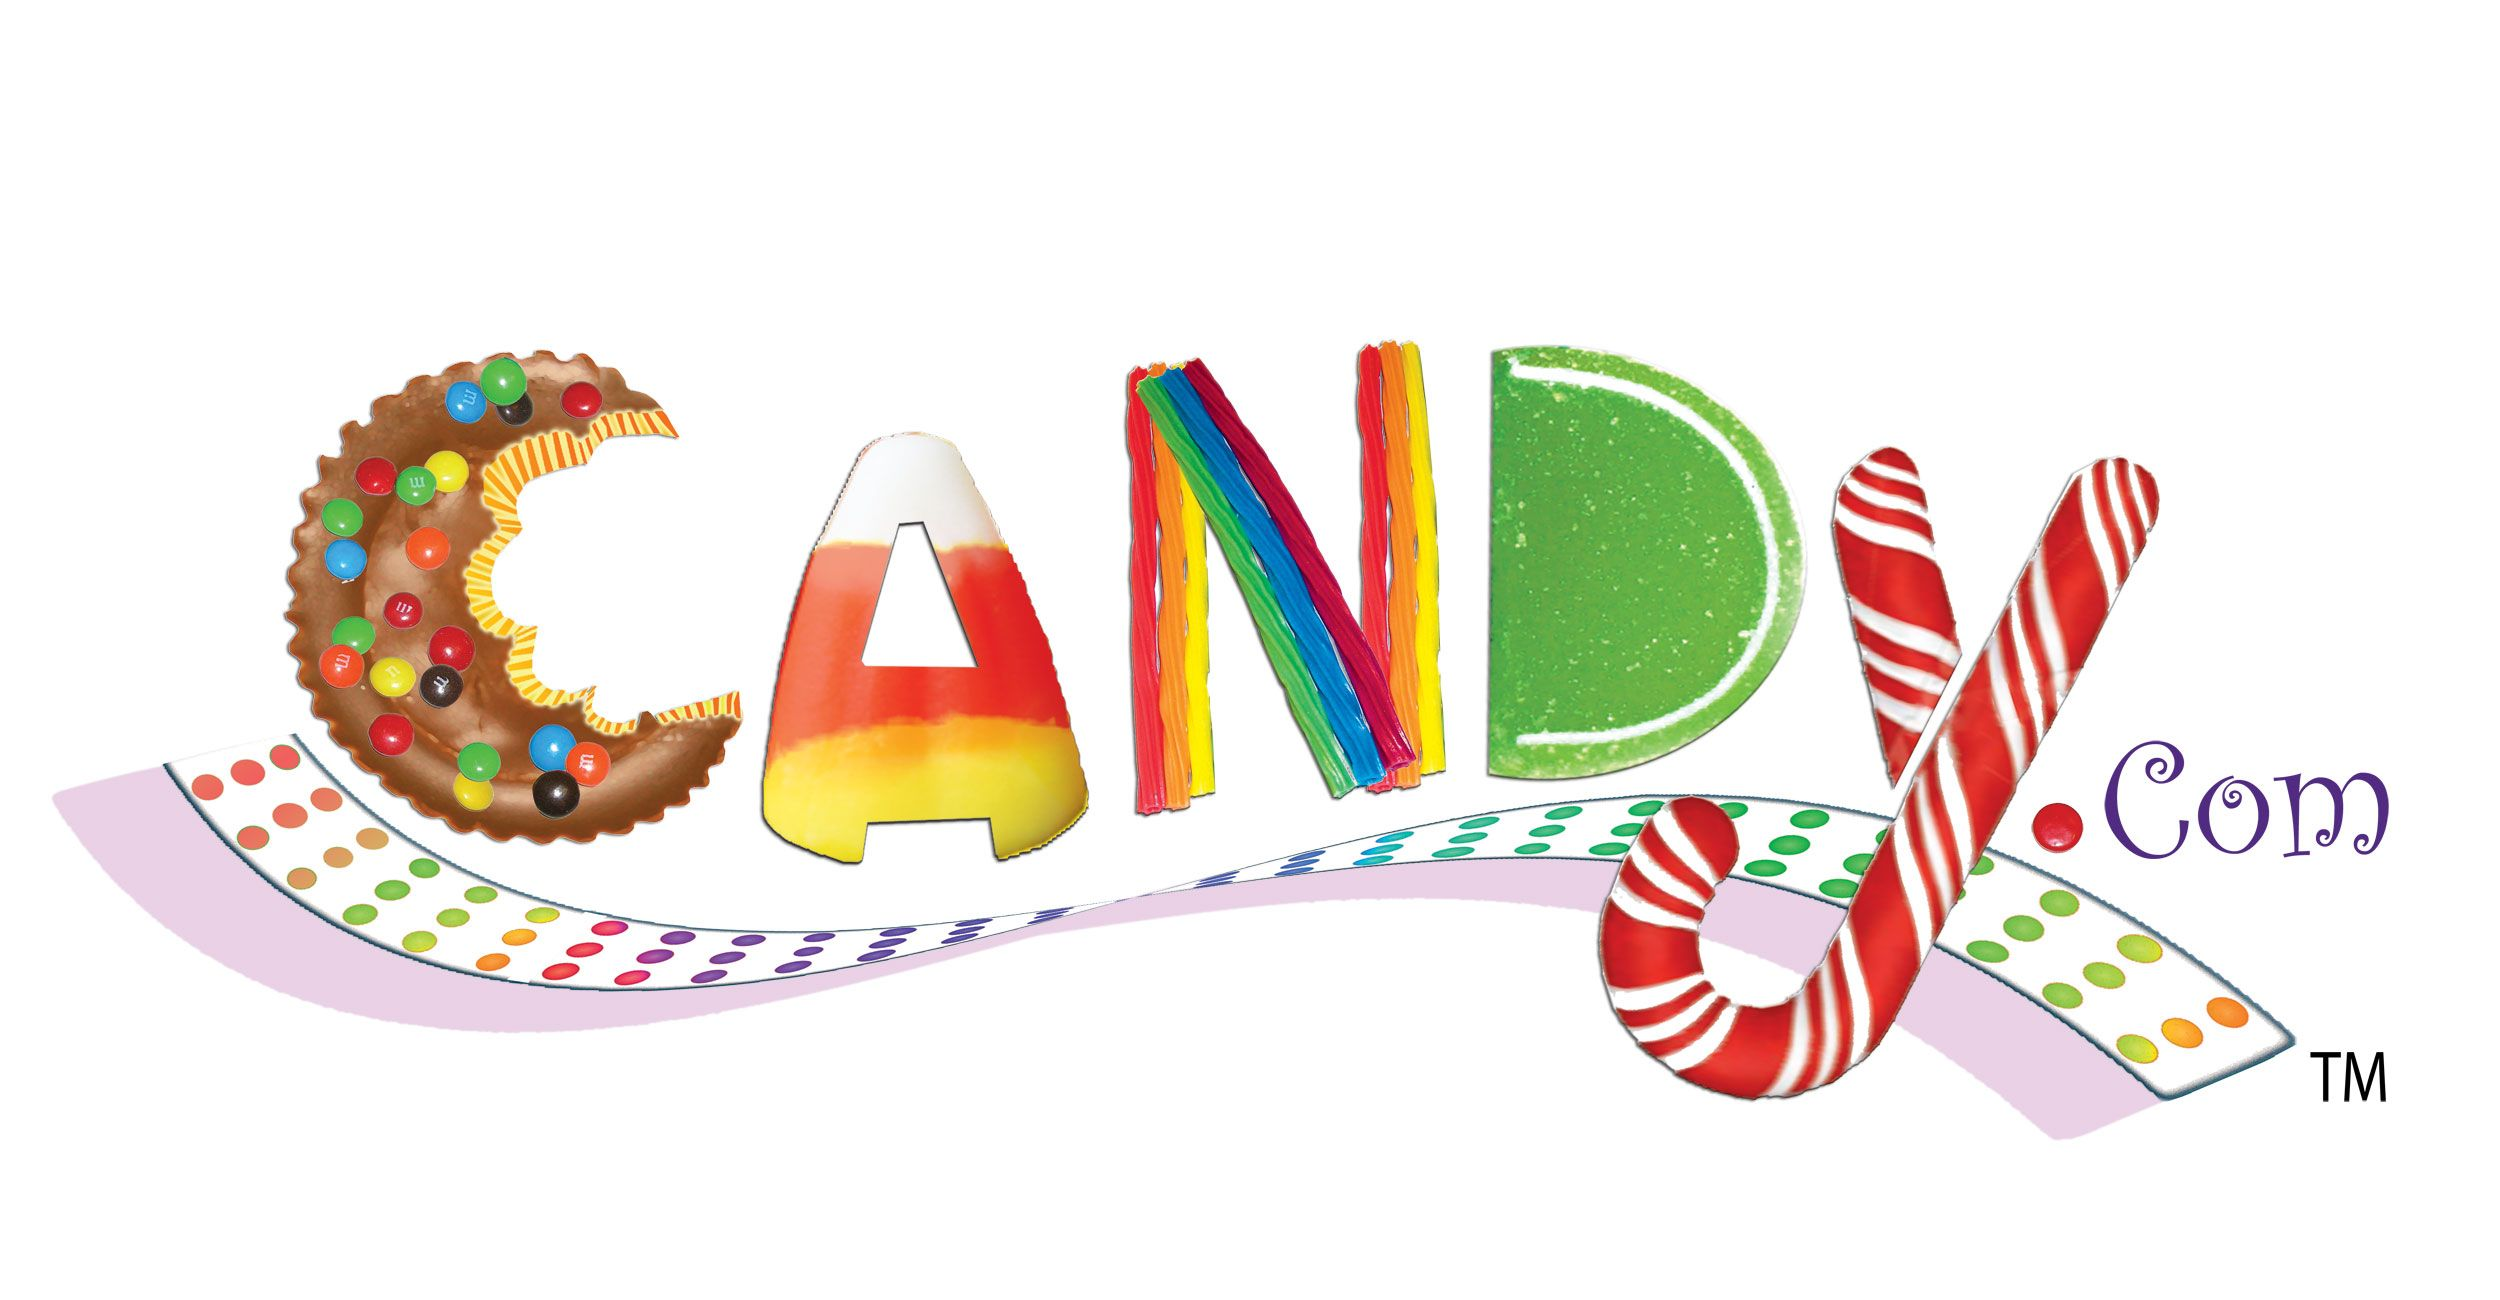 candy slogans candycom the worlds favorite corner